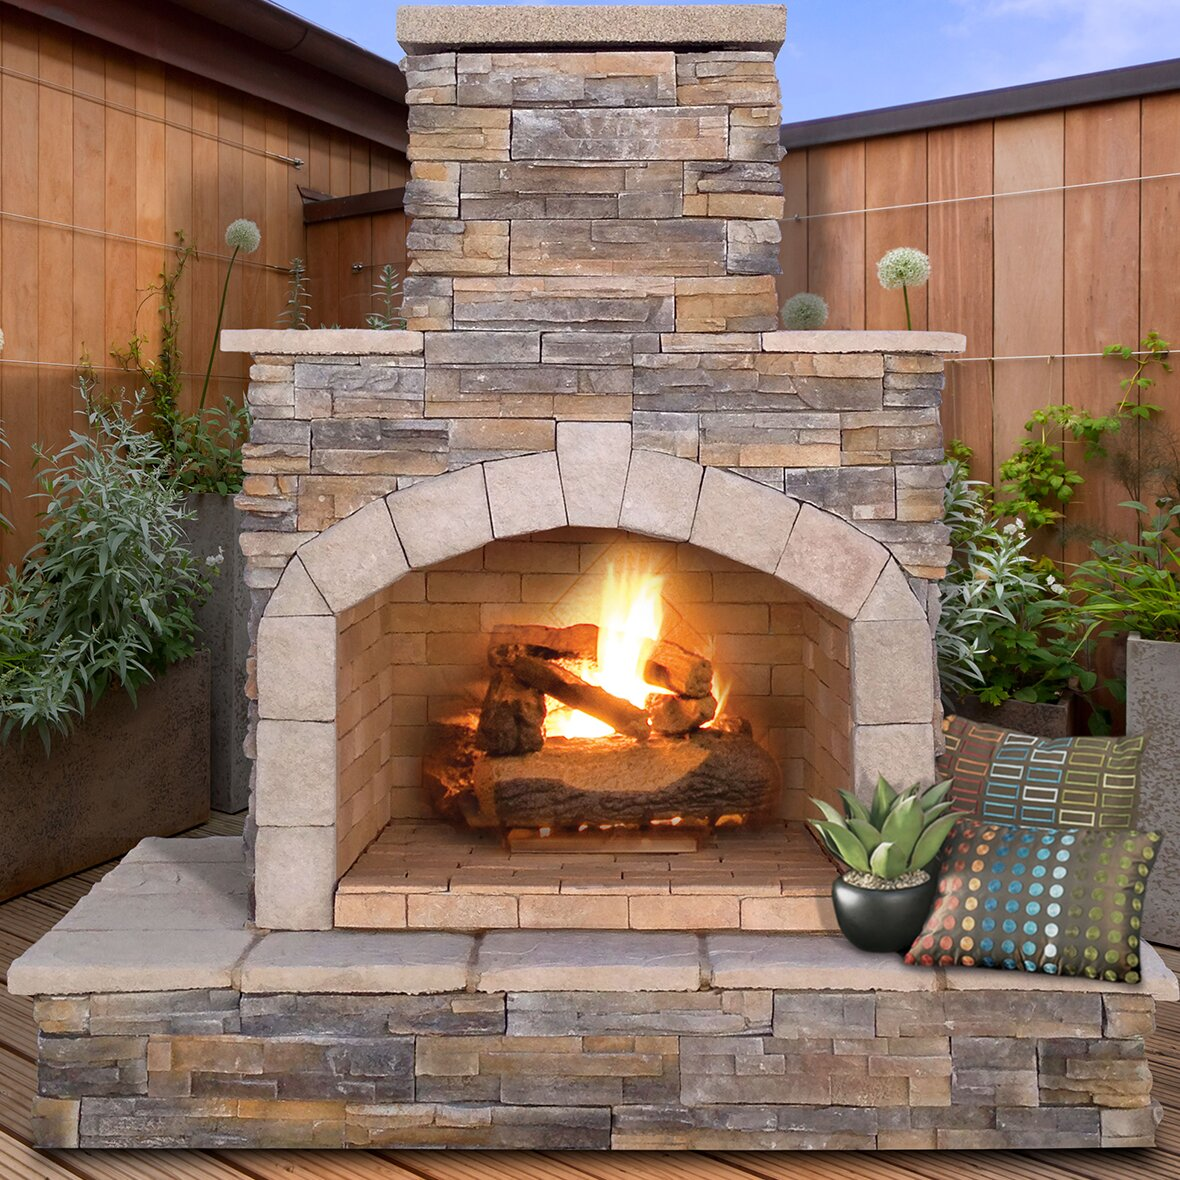 CalFlame Natural Stone Propane / Gas Outdoor Fireplace - CalFlame Natural Stone Propane / Gas Outdoor Fireplace & Reviews